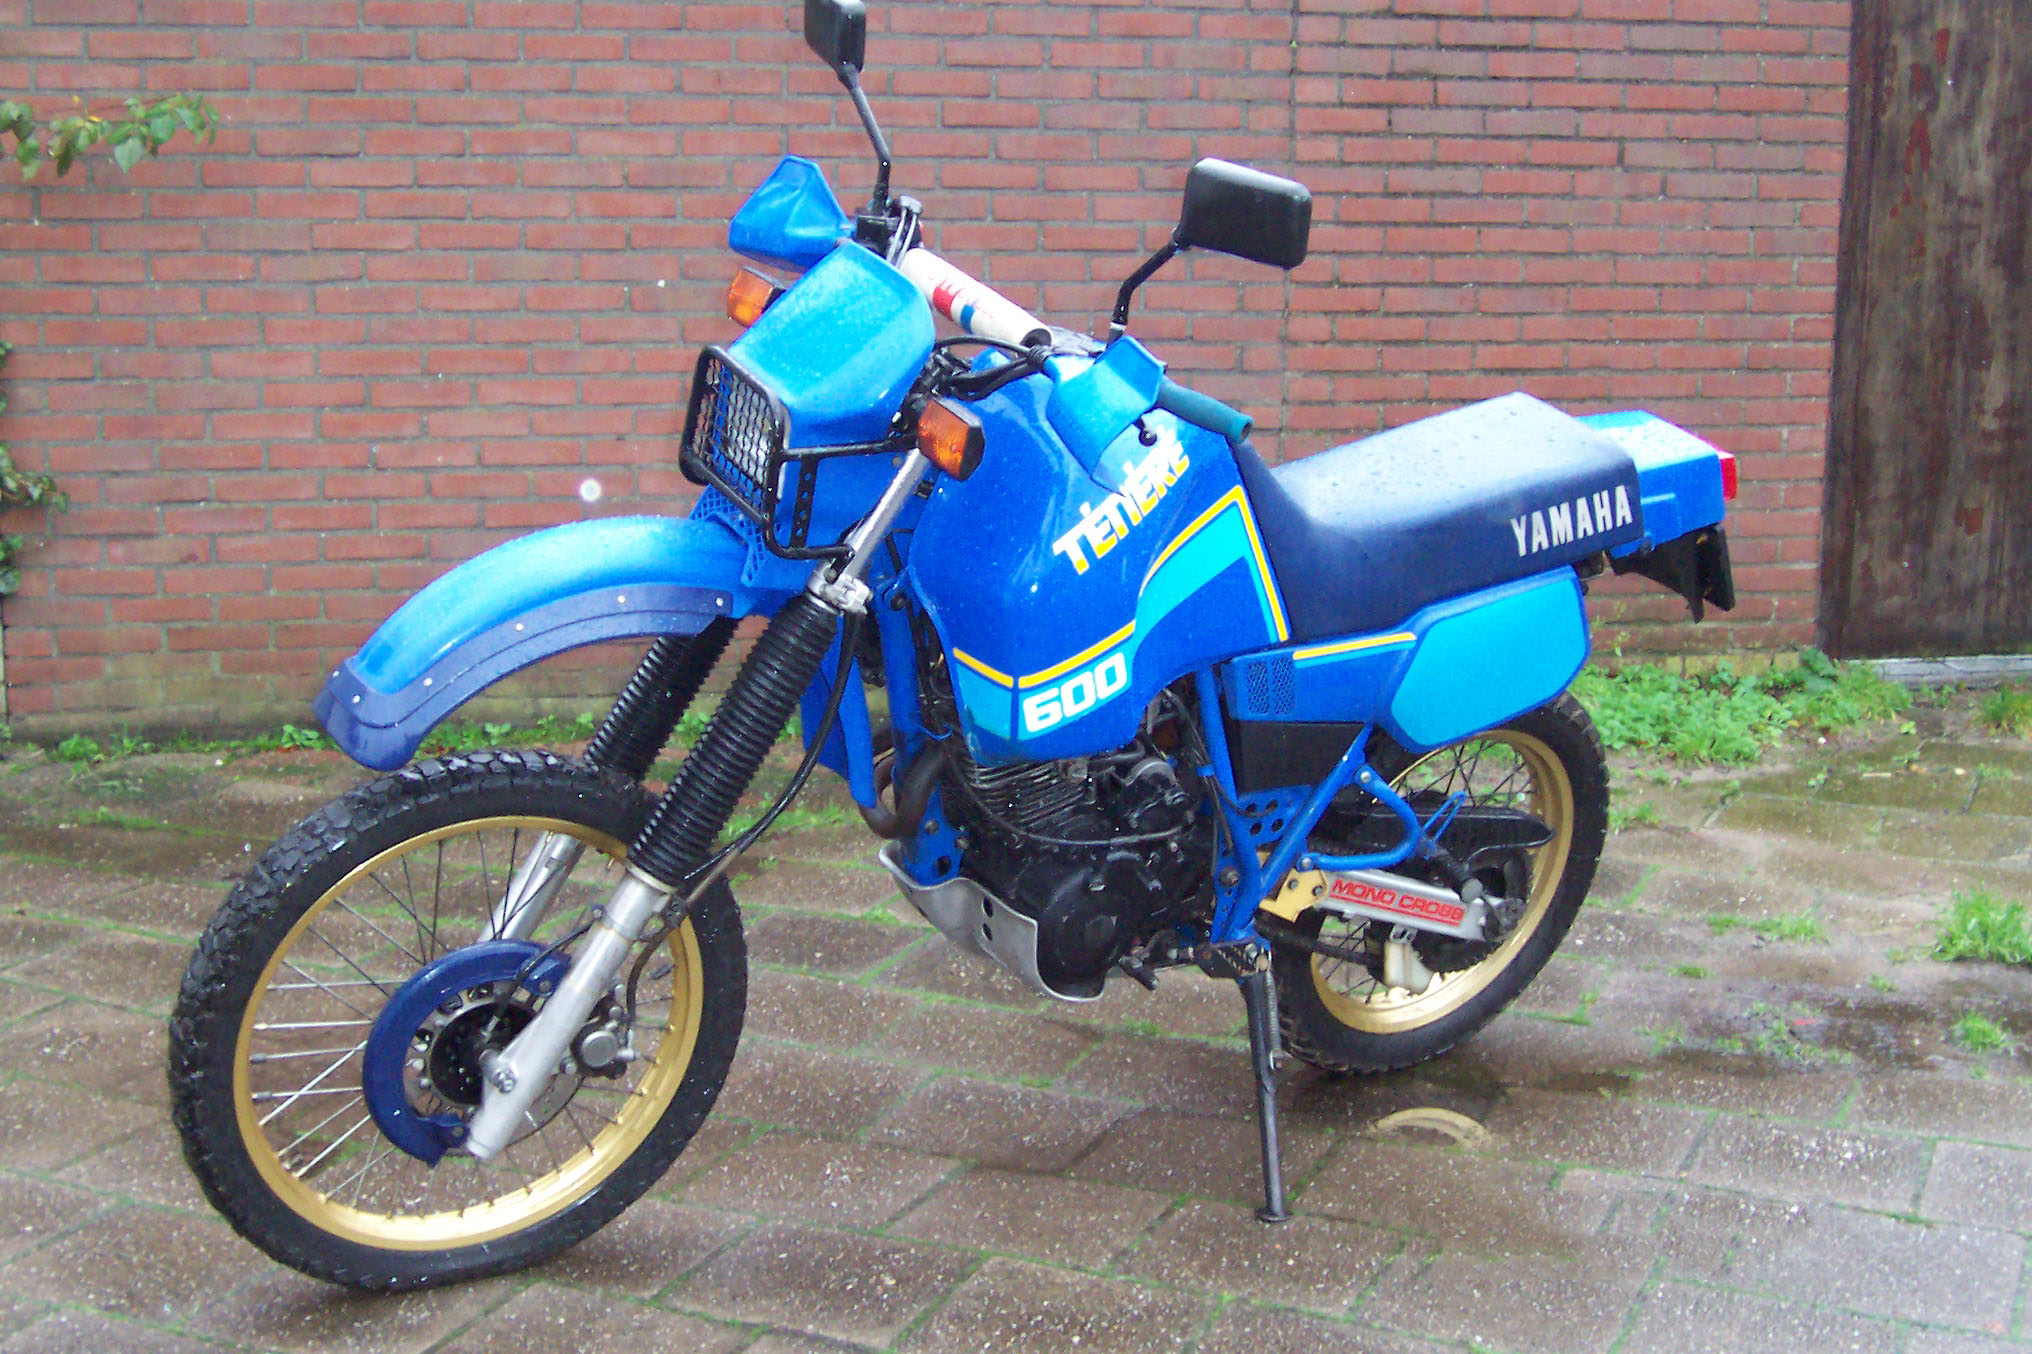 Yamaha XT 600 Tenere (reduced effect) 1986 #4